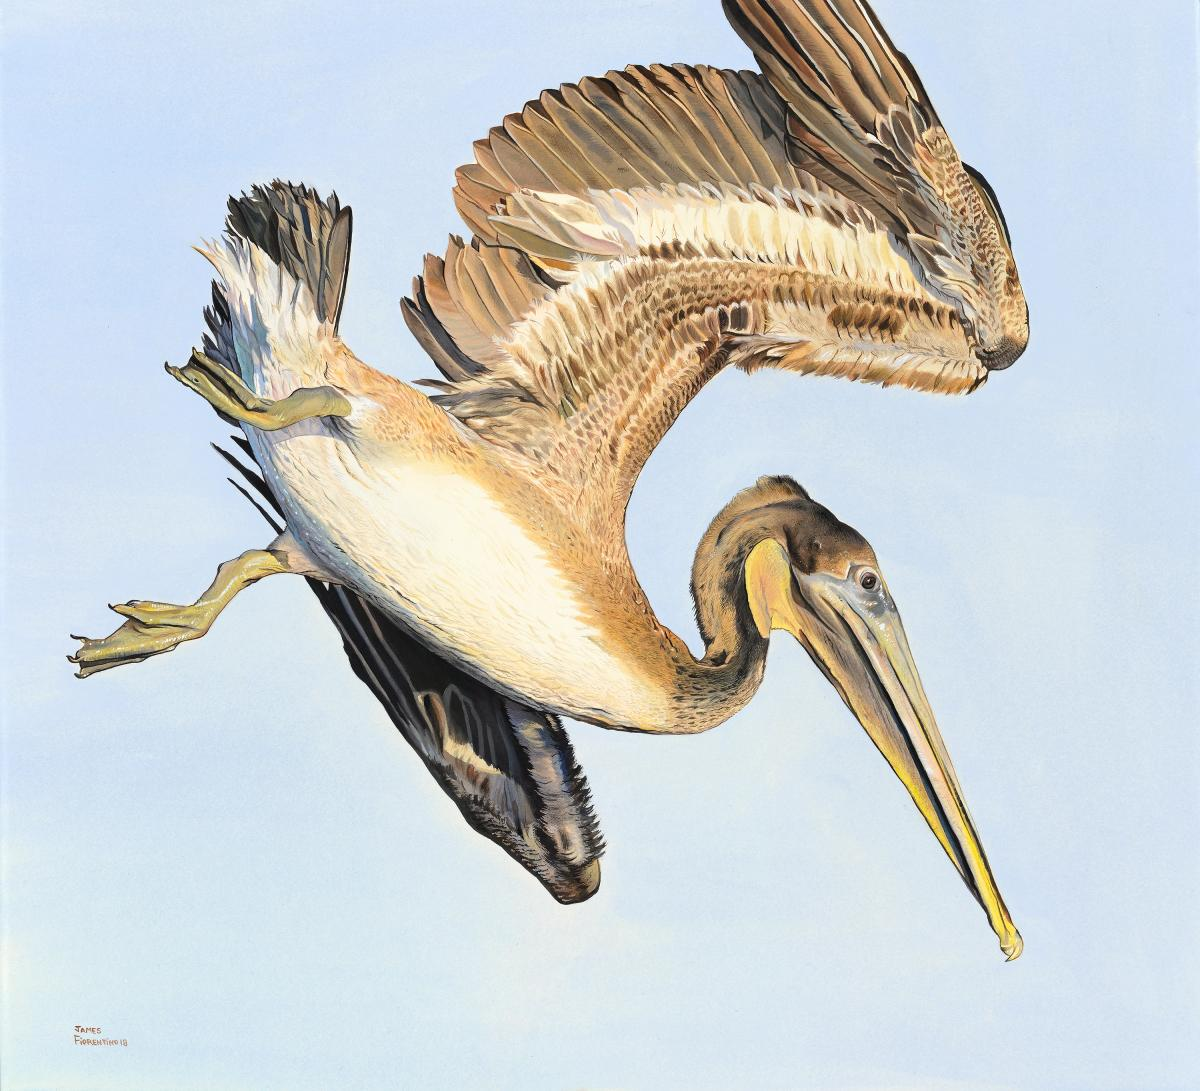 Brown Pelican in Flight | Wallhanging by James Fiorentino | Artists for Conservation 2018